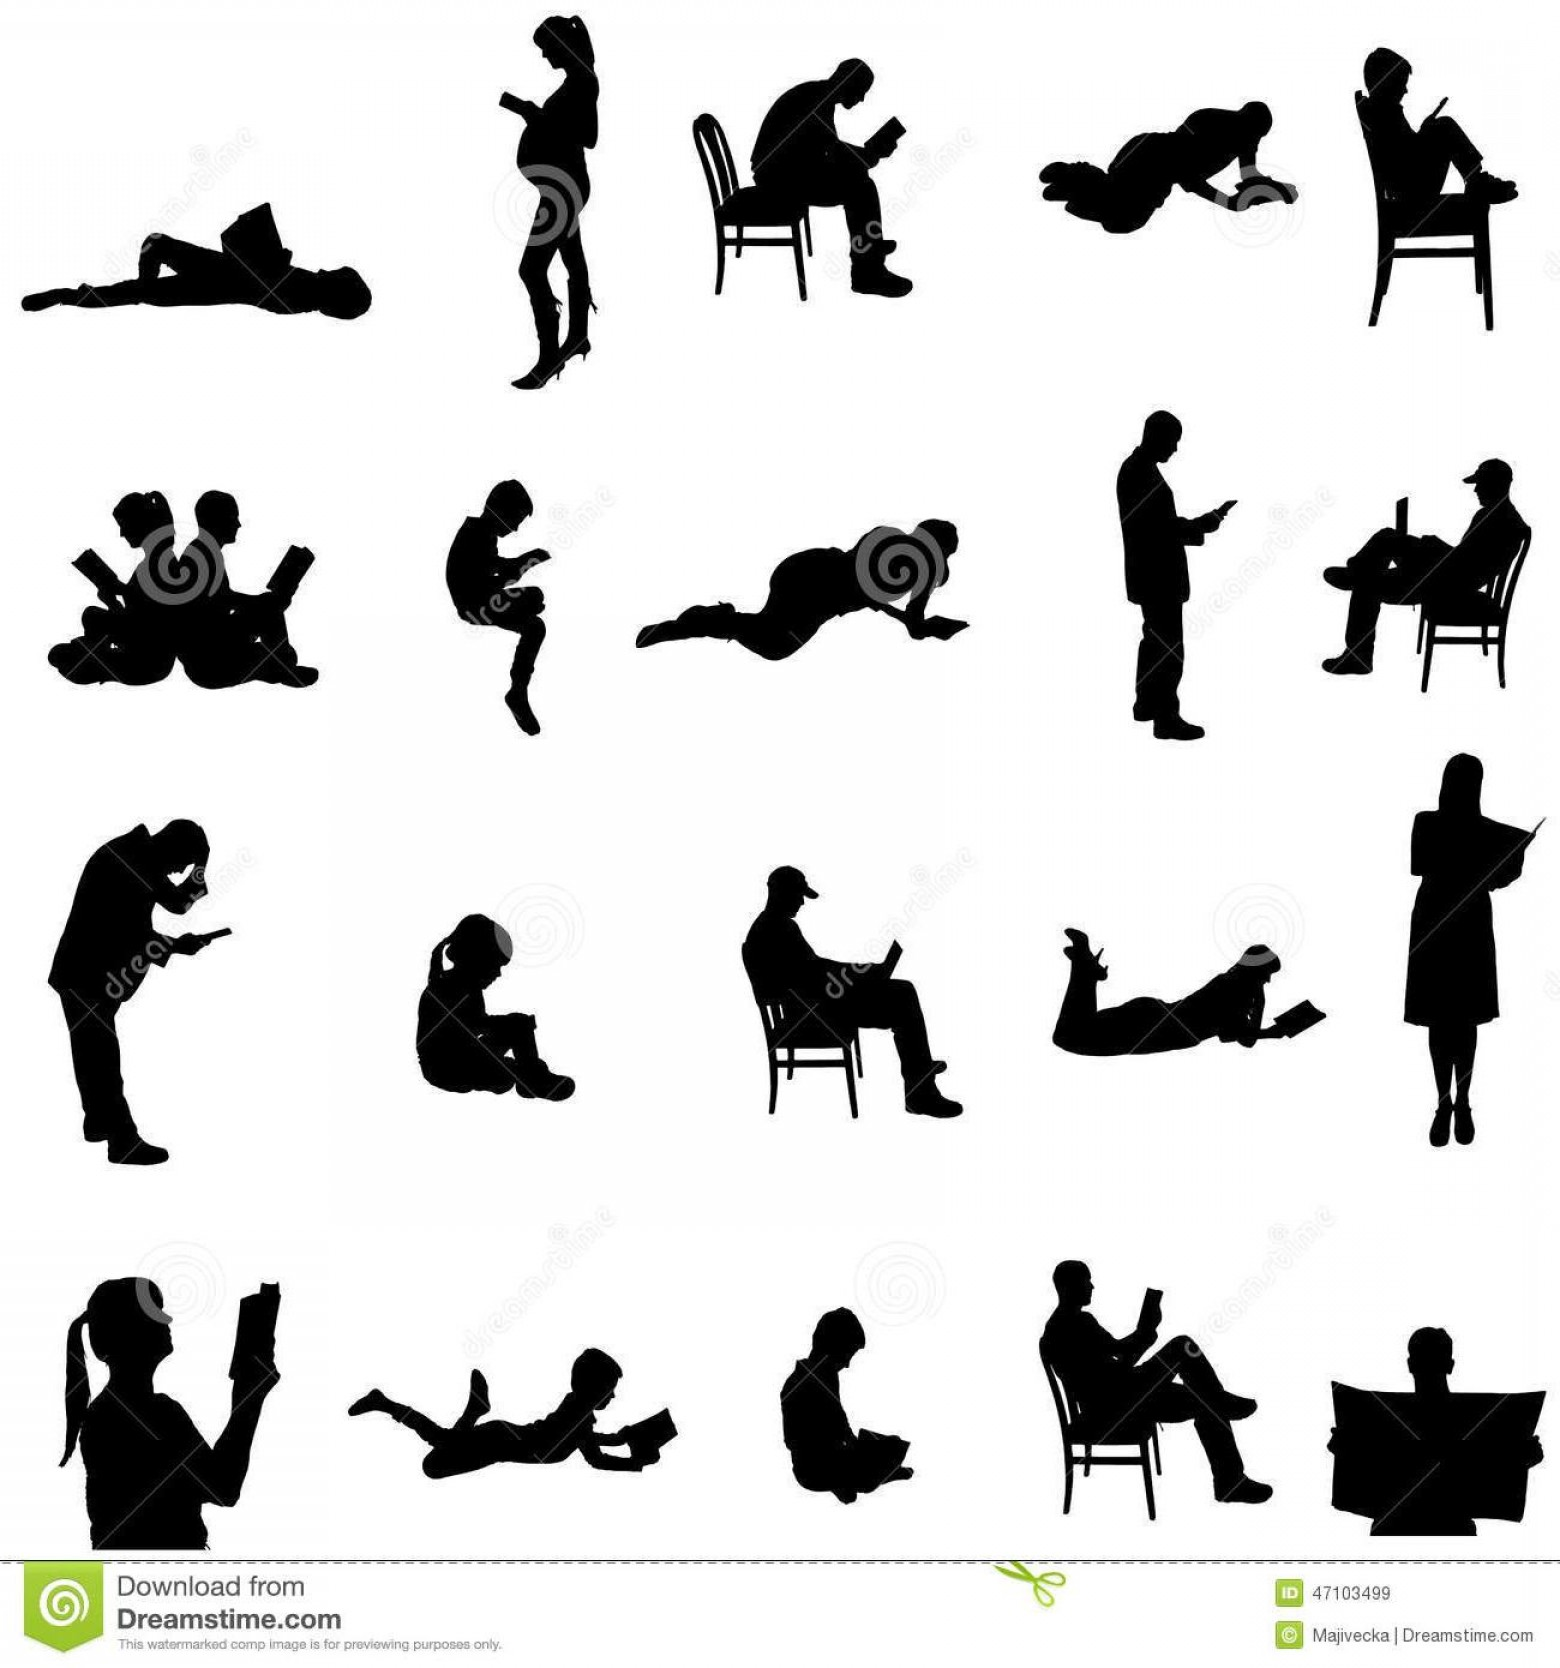 Vector People Free Clip Art: Hd Vector People Sitting Vector Image